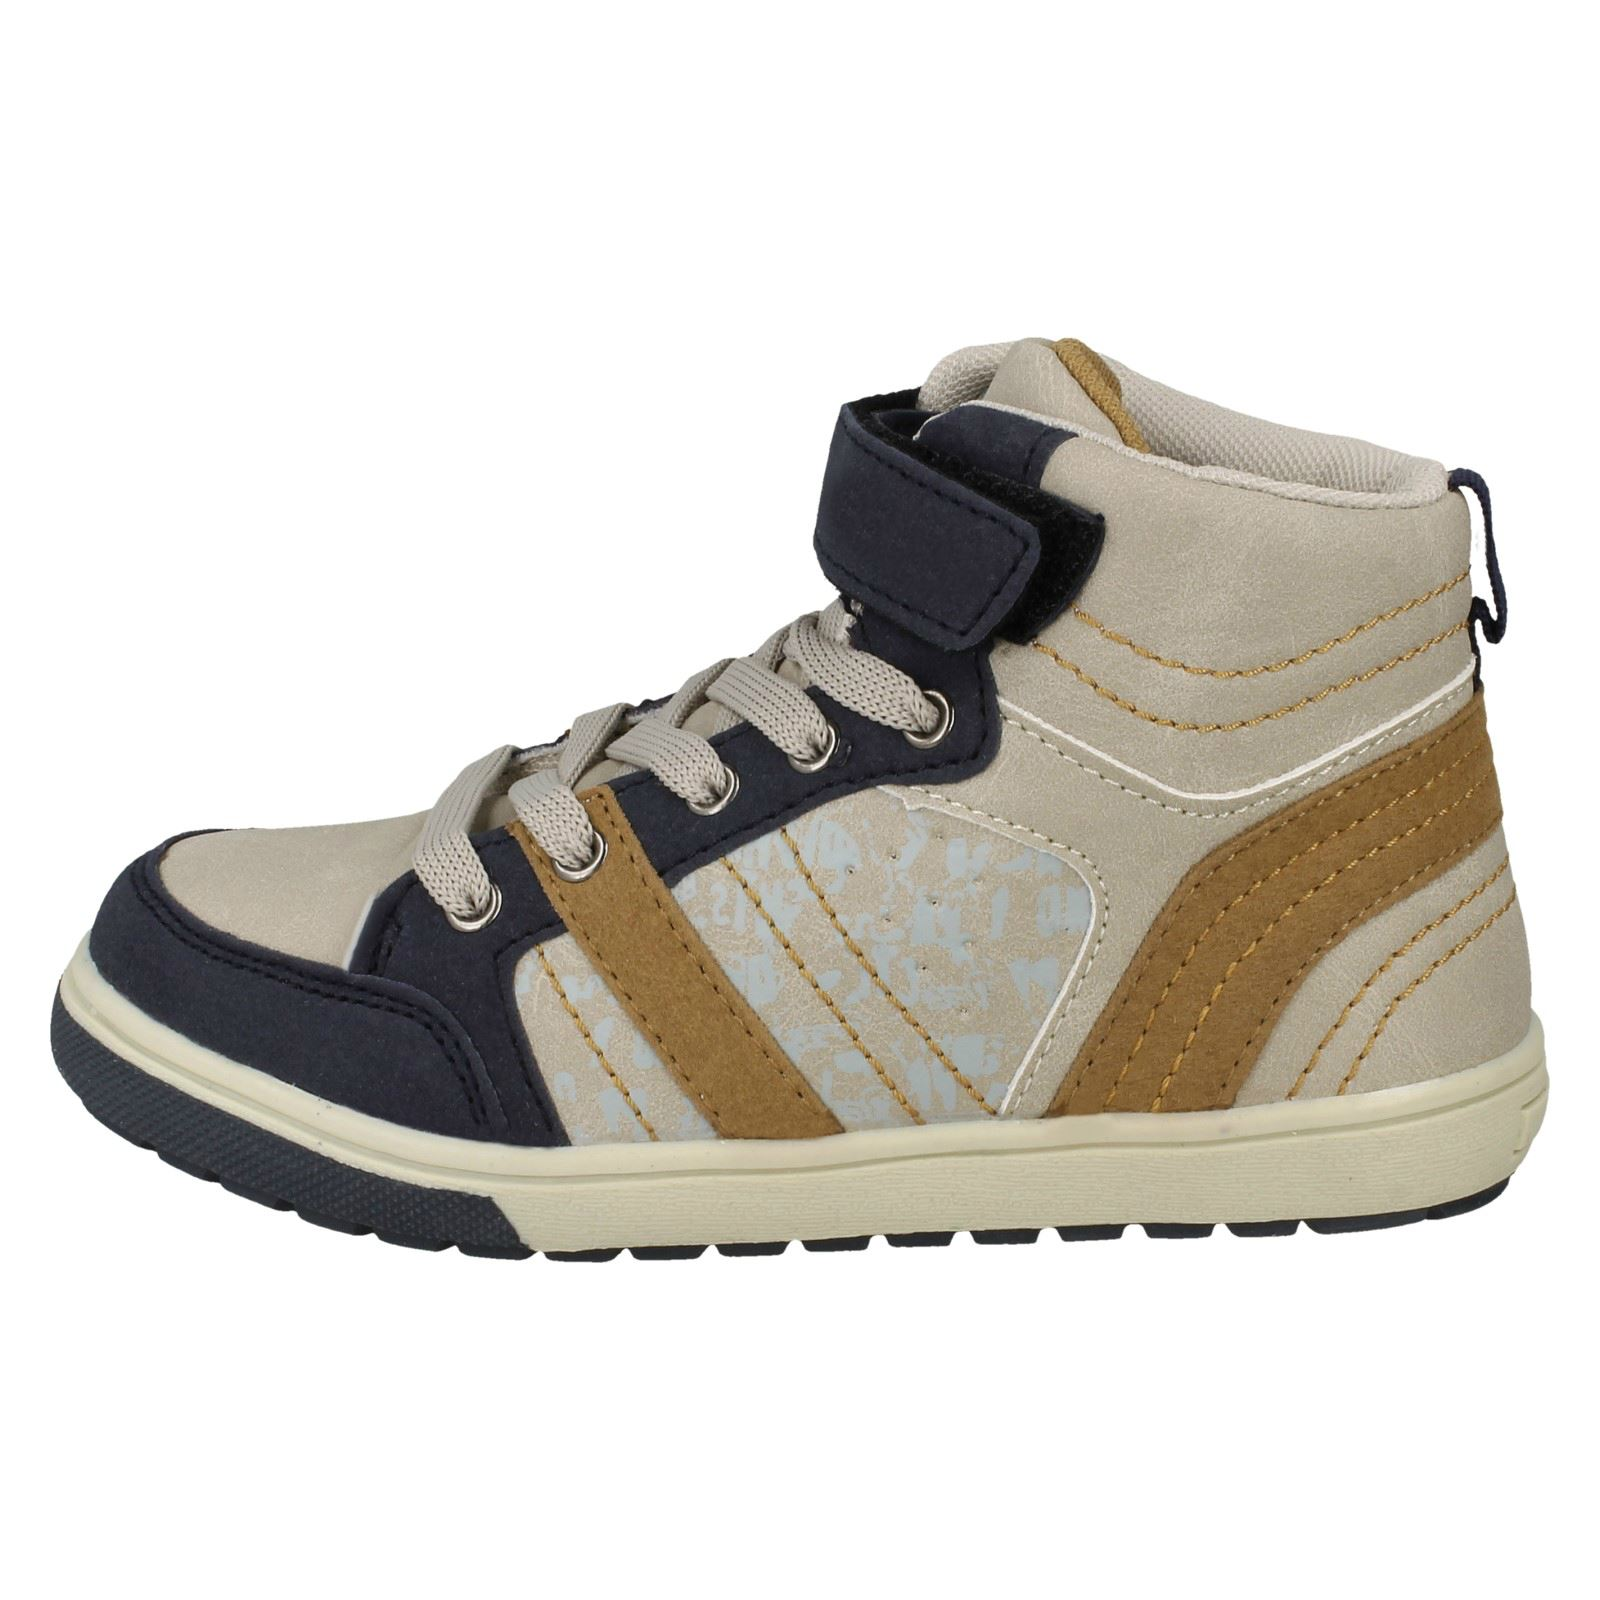 Boys JCDees Hi-Top *Trainers*